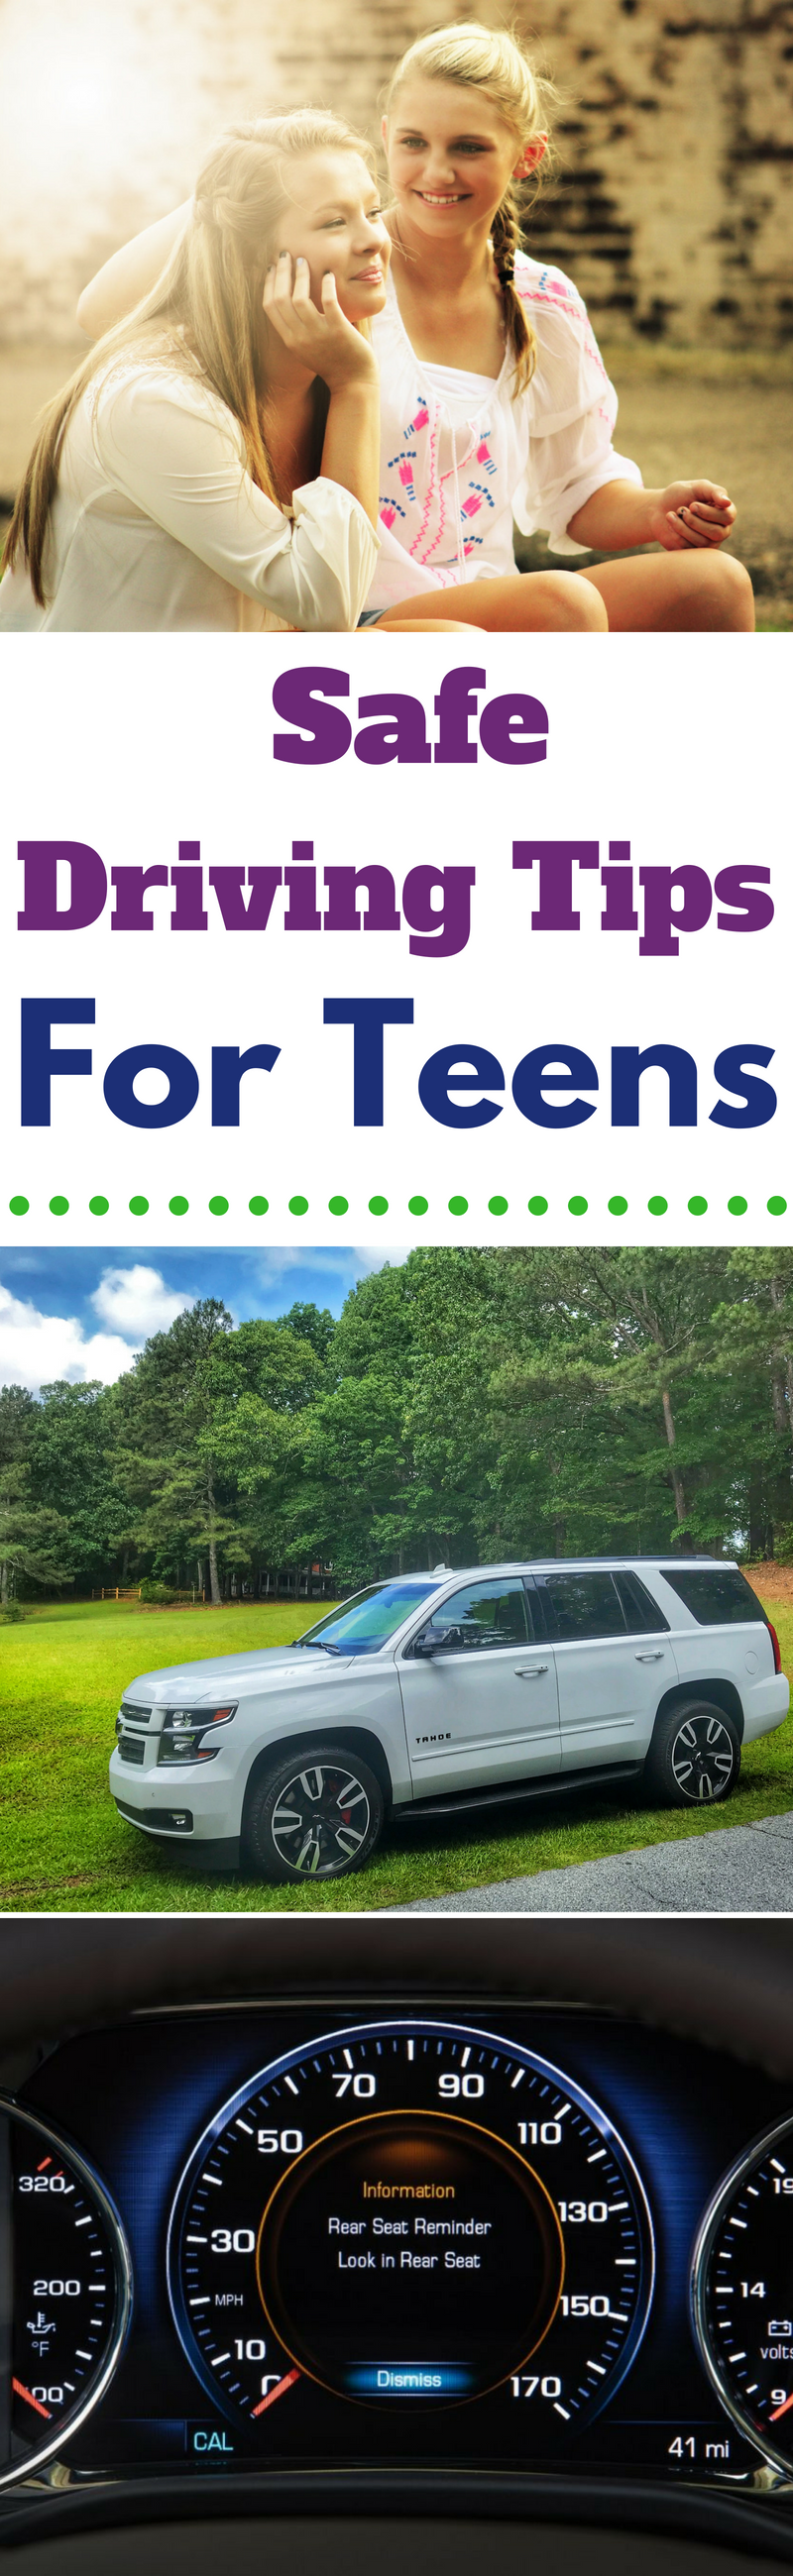 The best teen safe driving tips to keep them safe behind the wheel and help give you peace of mind. #Teens #Teenager #Driving #Chevrolet